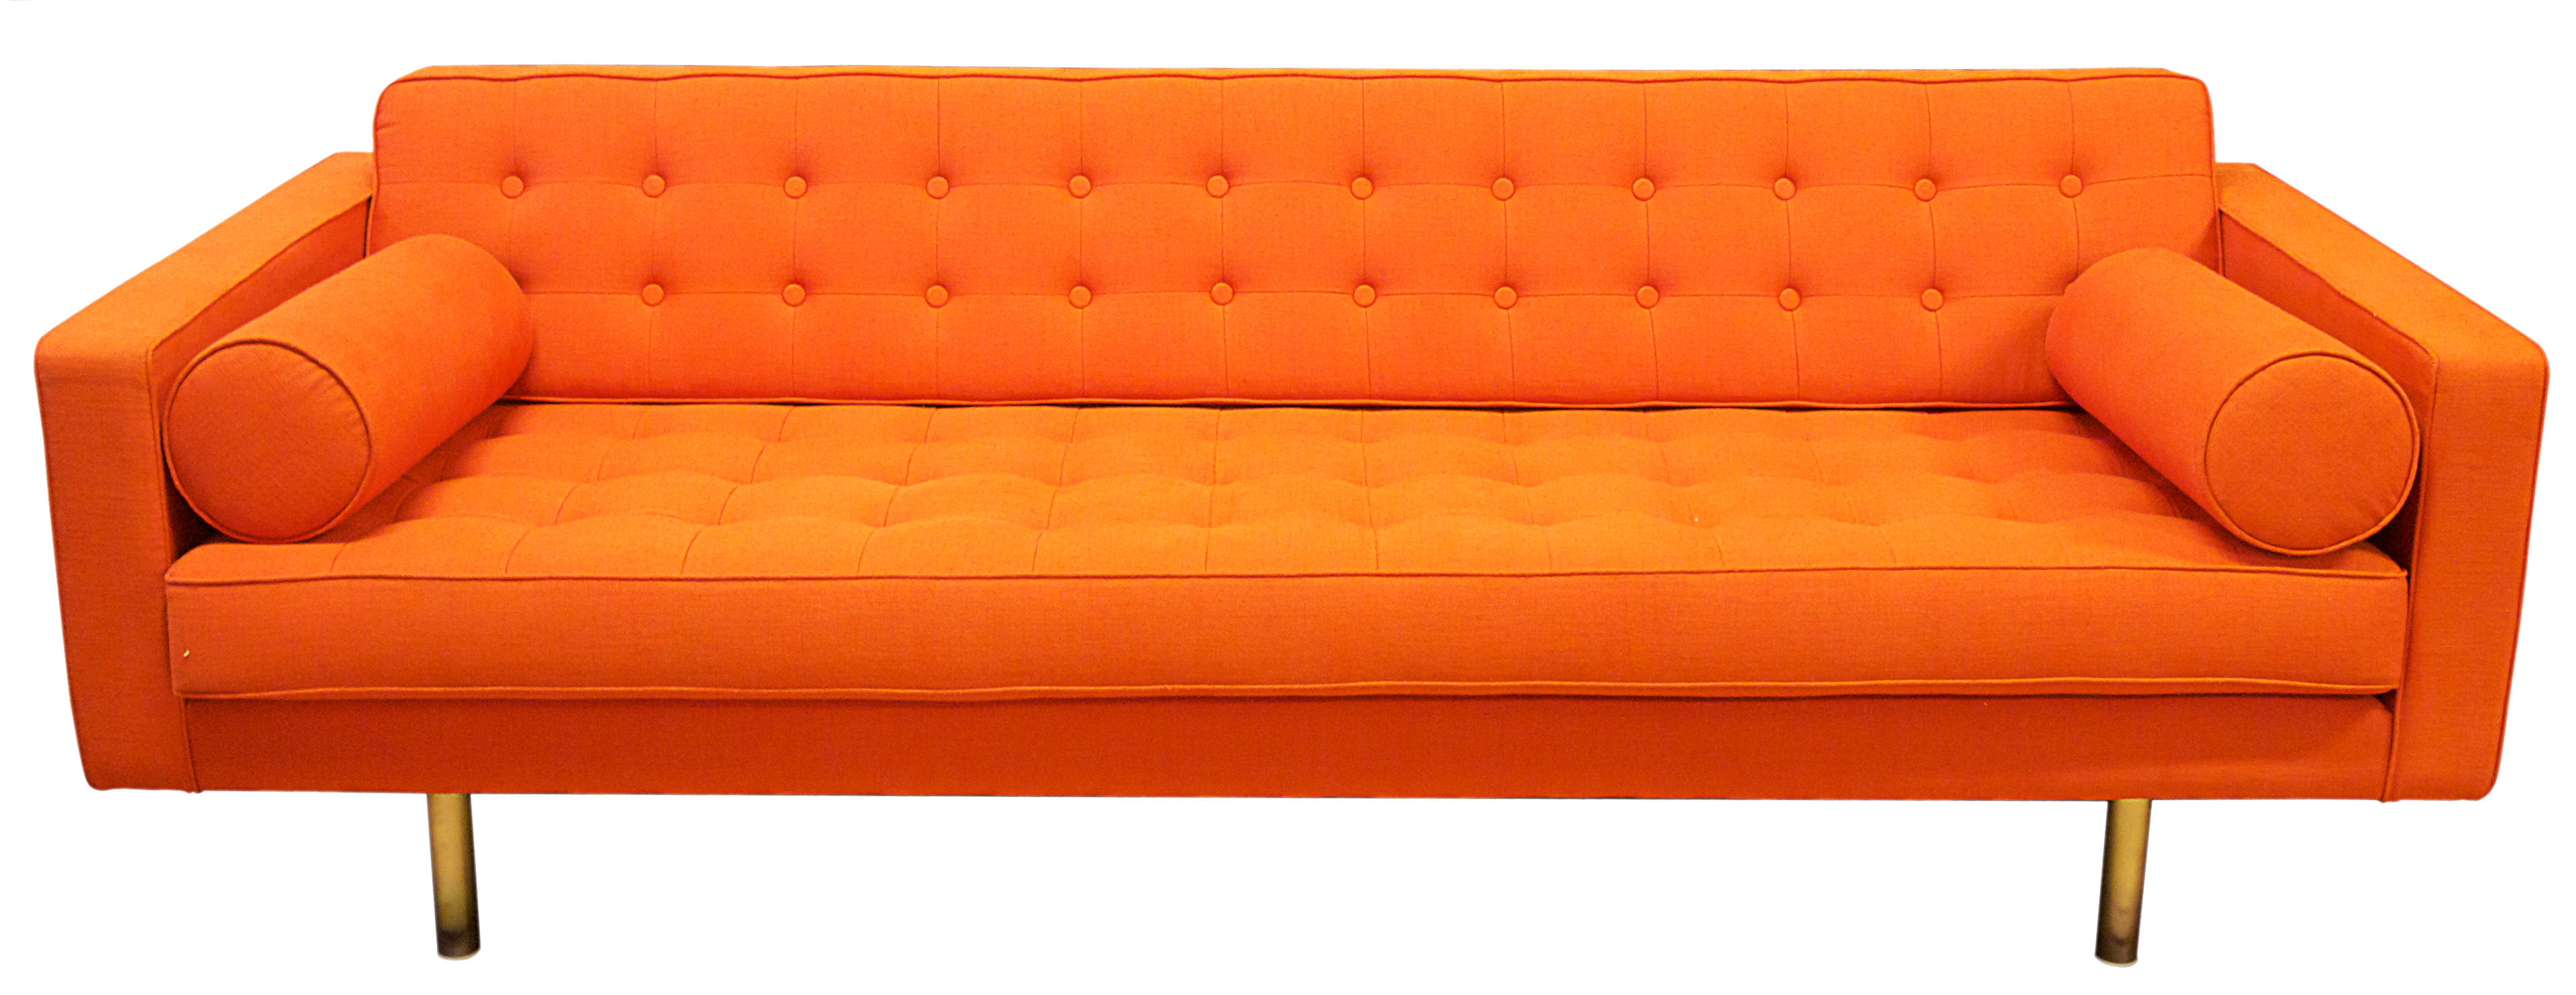 Canap droit 3 places l 215 cm orange made in design editions - Canape made in design ...